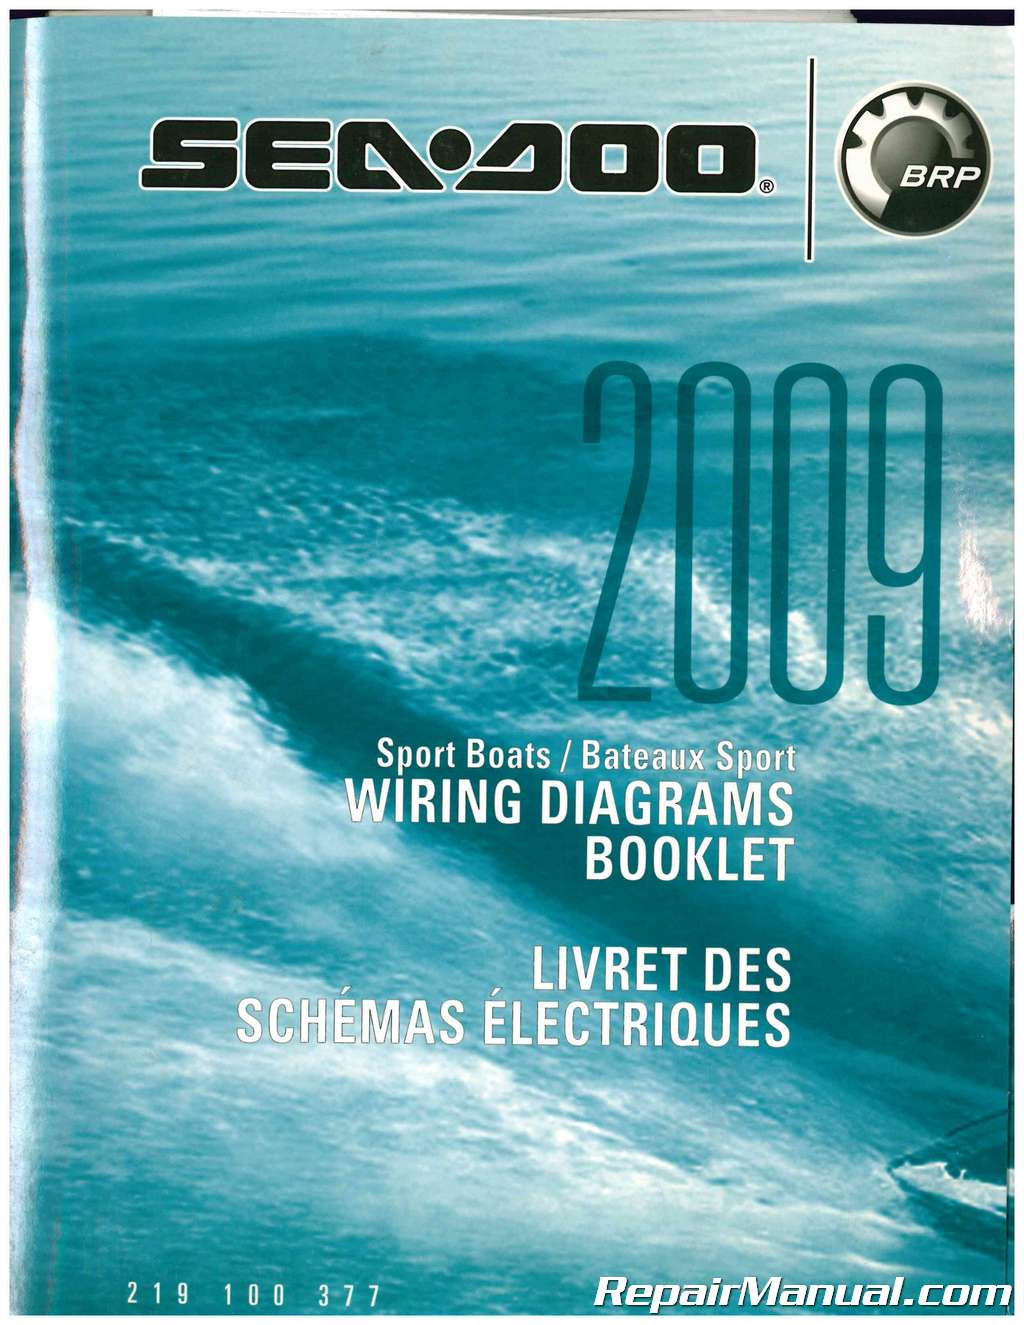 2009 Sea Doo Boat Wiring Diagram Speedster Challenger Islandia Utopia Marine Diagrams